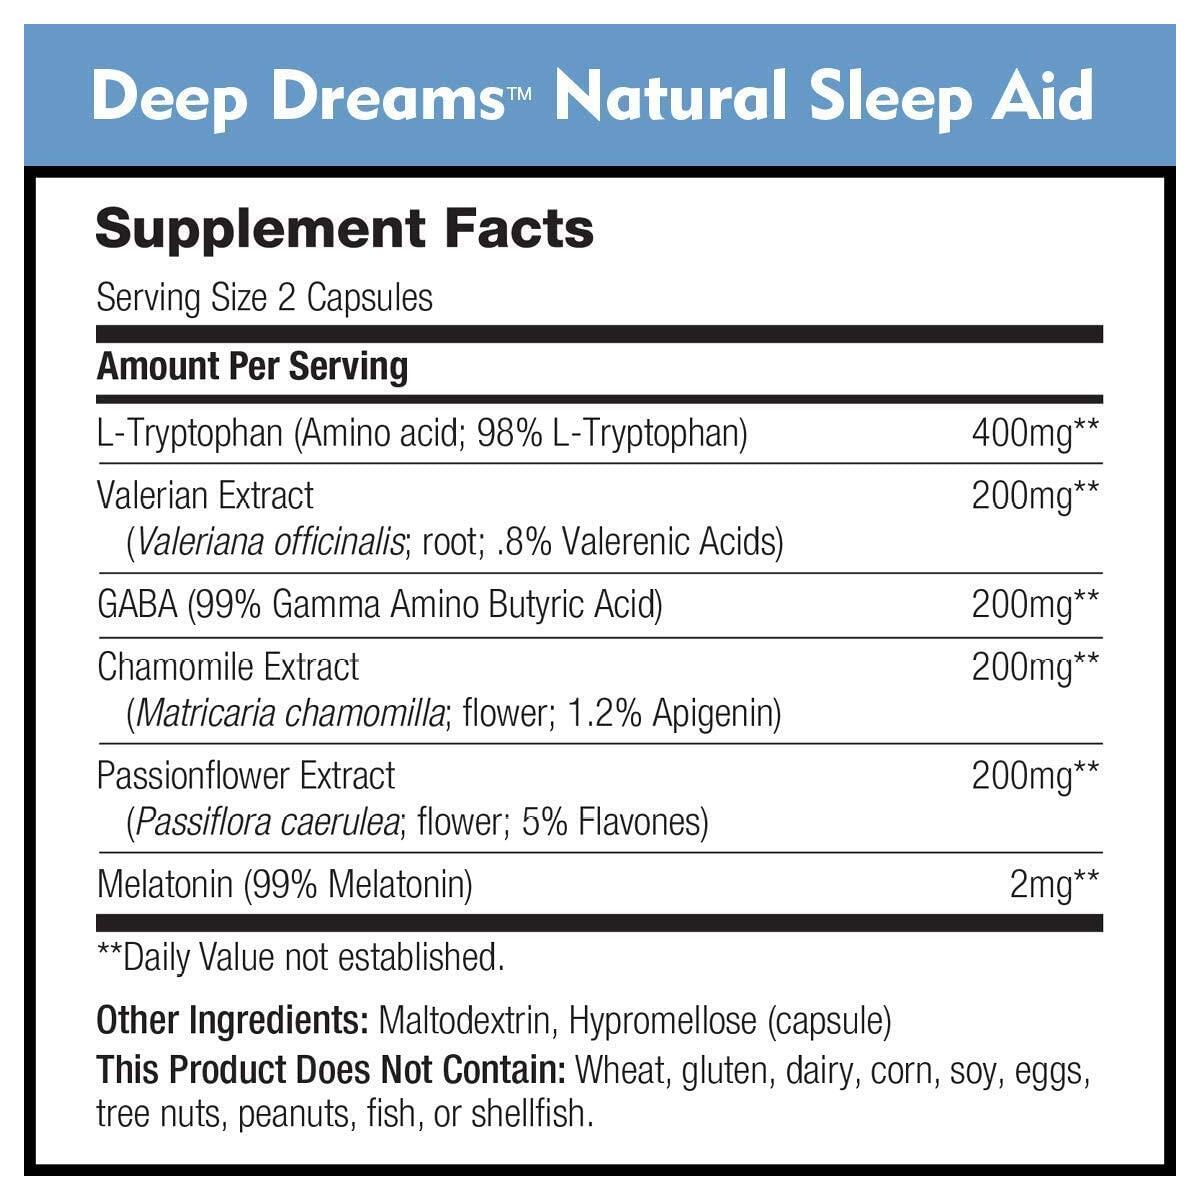 Deep Dreams Natural Sleep Aid by DailyNutra - Deep, Restful Sleep Supplement - Non-Habit Forming Sleeping Pills | with Melatonin, L-Tryptophan, Valerian, GABA, Chamomile, Passionflower